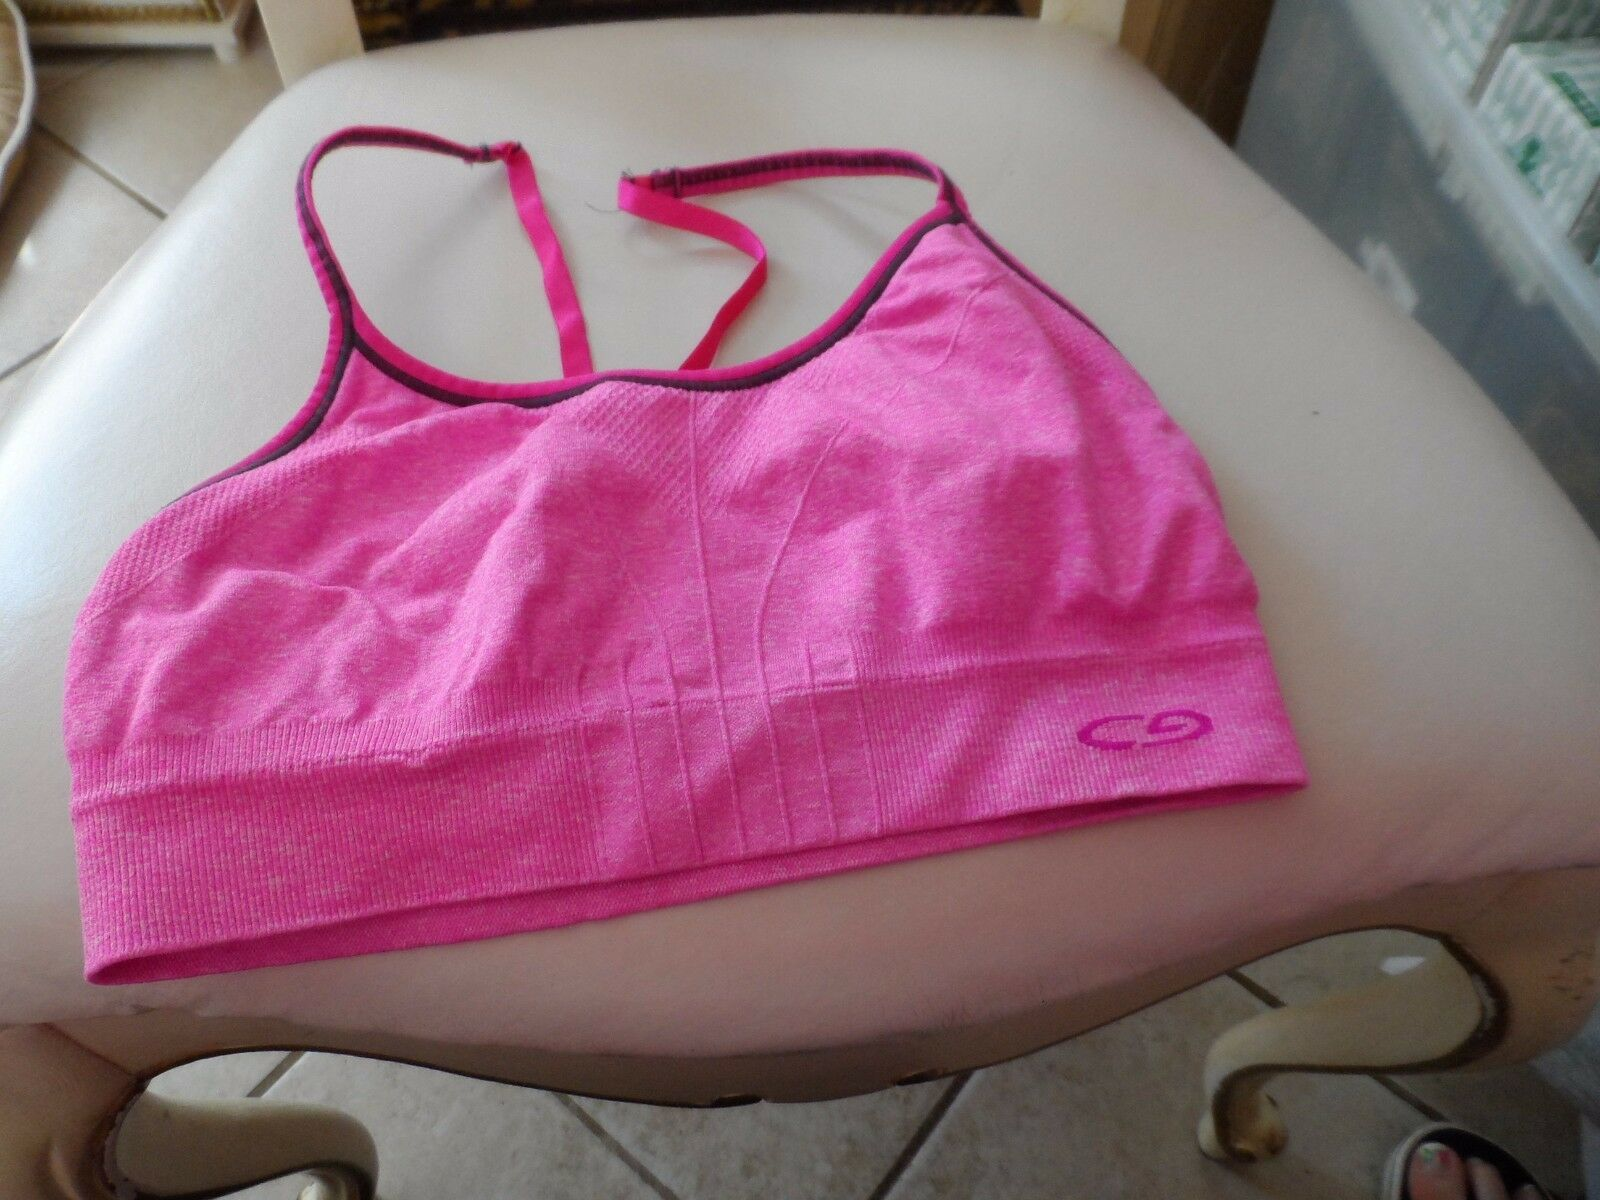 girls black and pink sports bra size Small by Champion